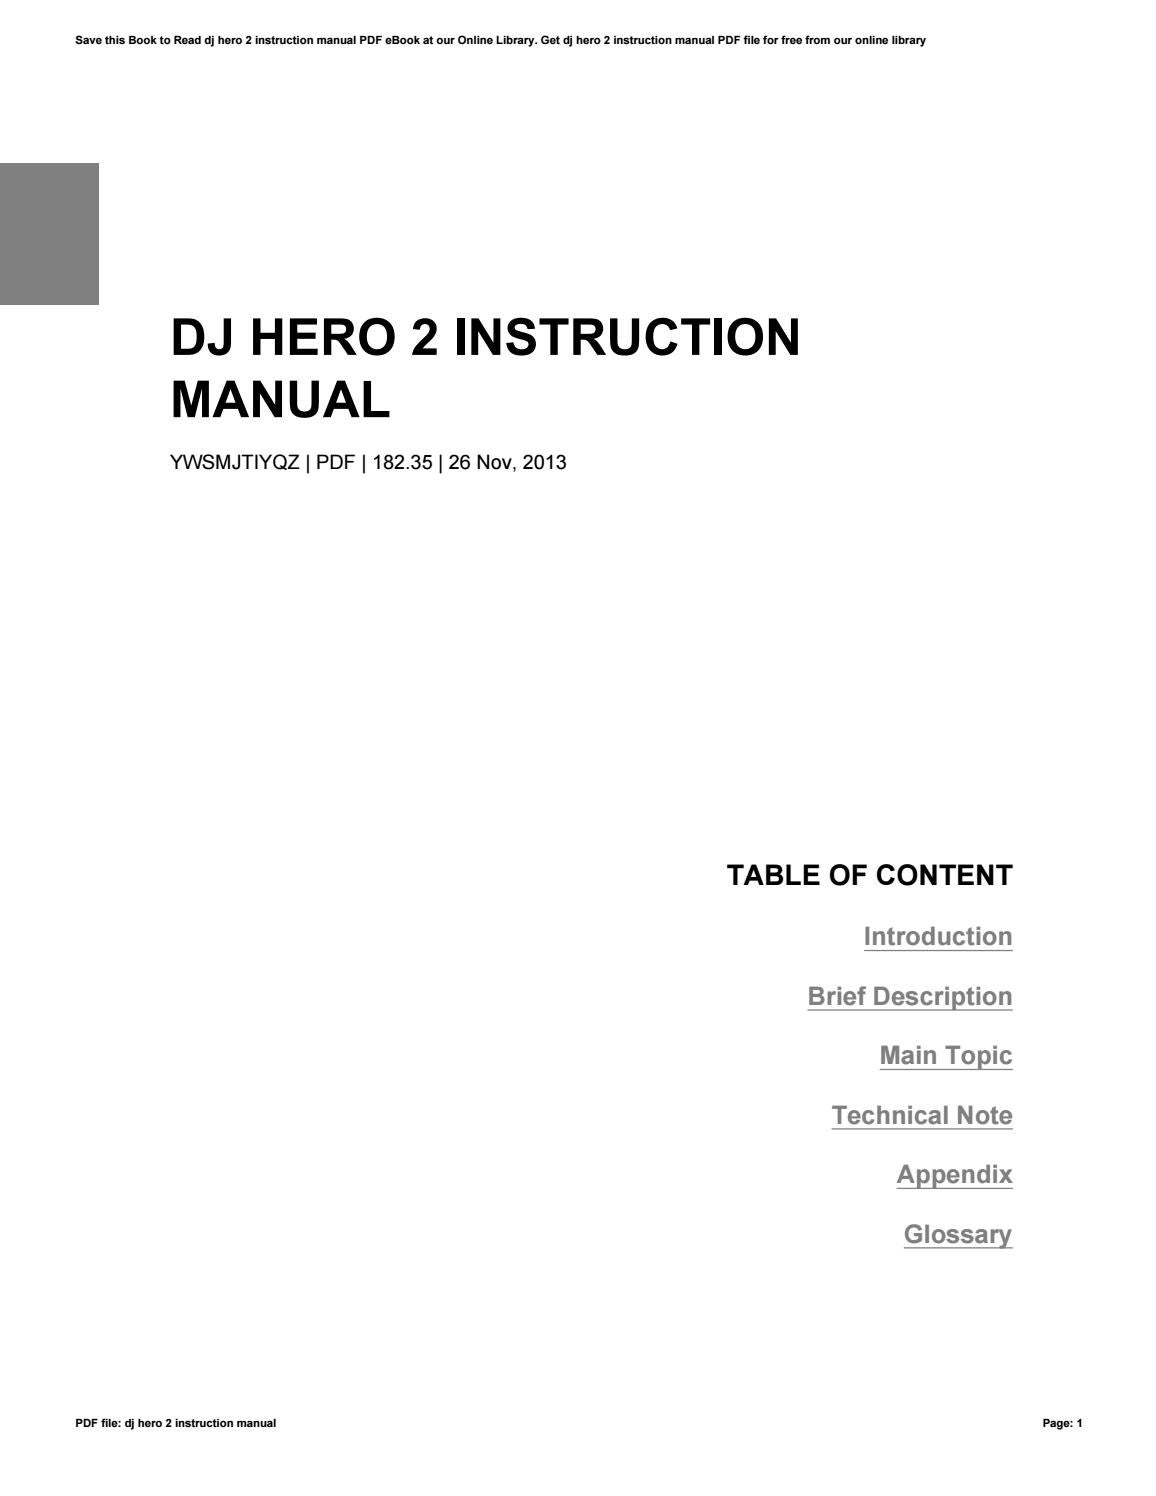 dj hero 2 instruction manual by nicoleharris3286 issuu rh issuu com gopro hero 2 user manual pdf gopro hero 2 user manual pdf